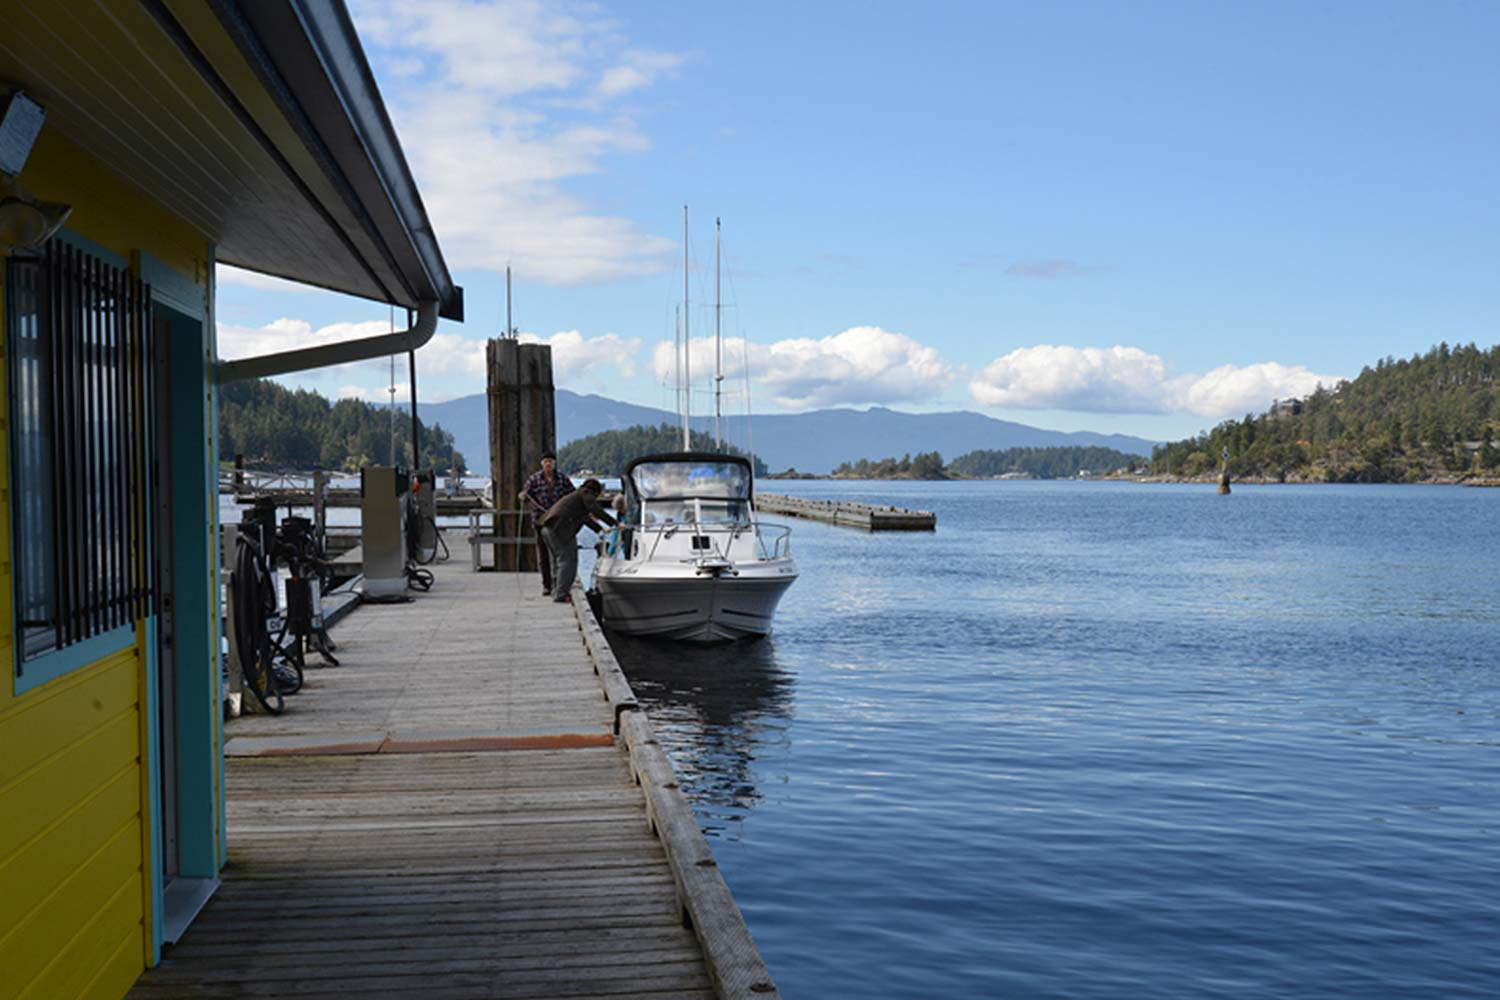 A boat awaits refuelling at the only Pender Harbour marine fuel dock. Commercial and recreational vessels use this fuel dock.